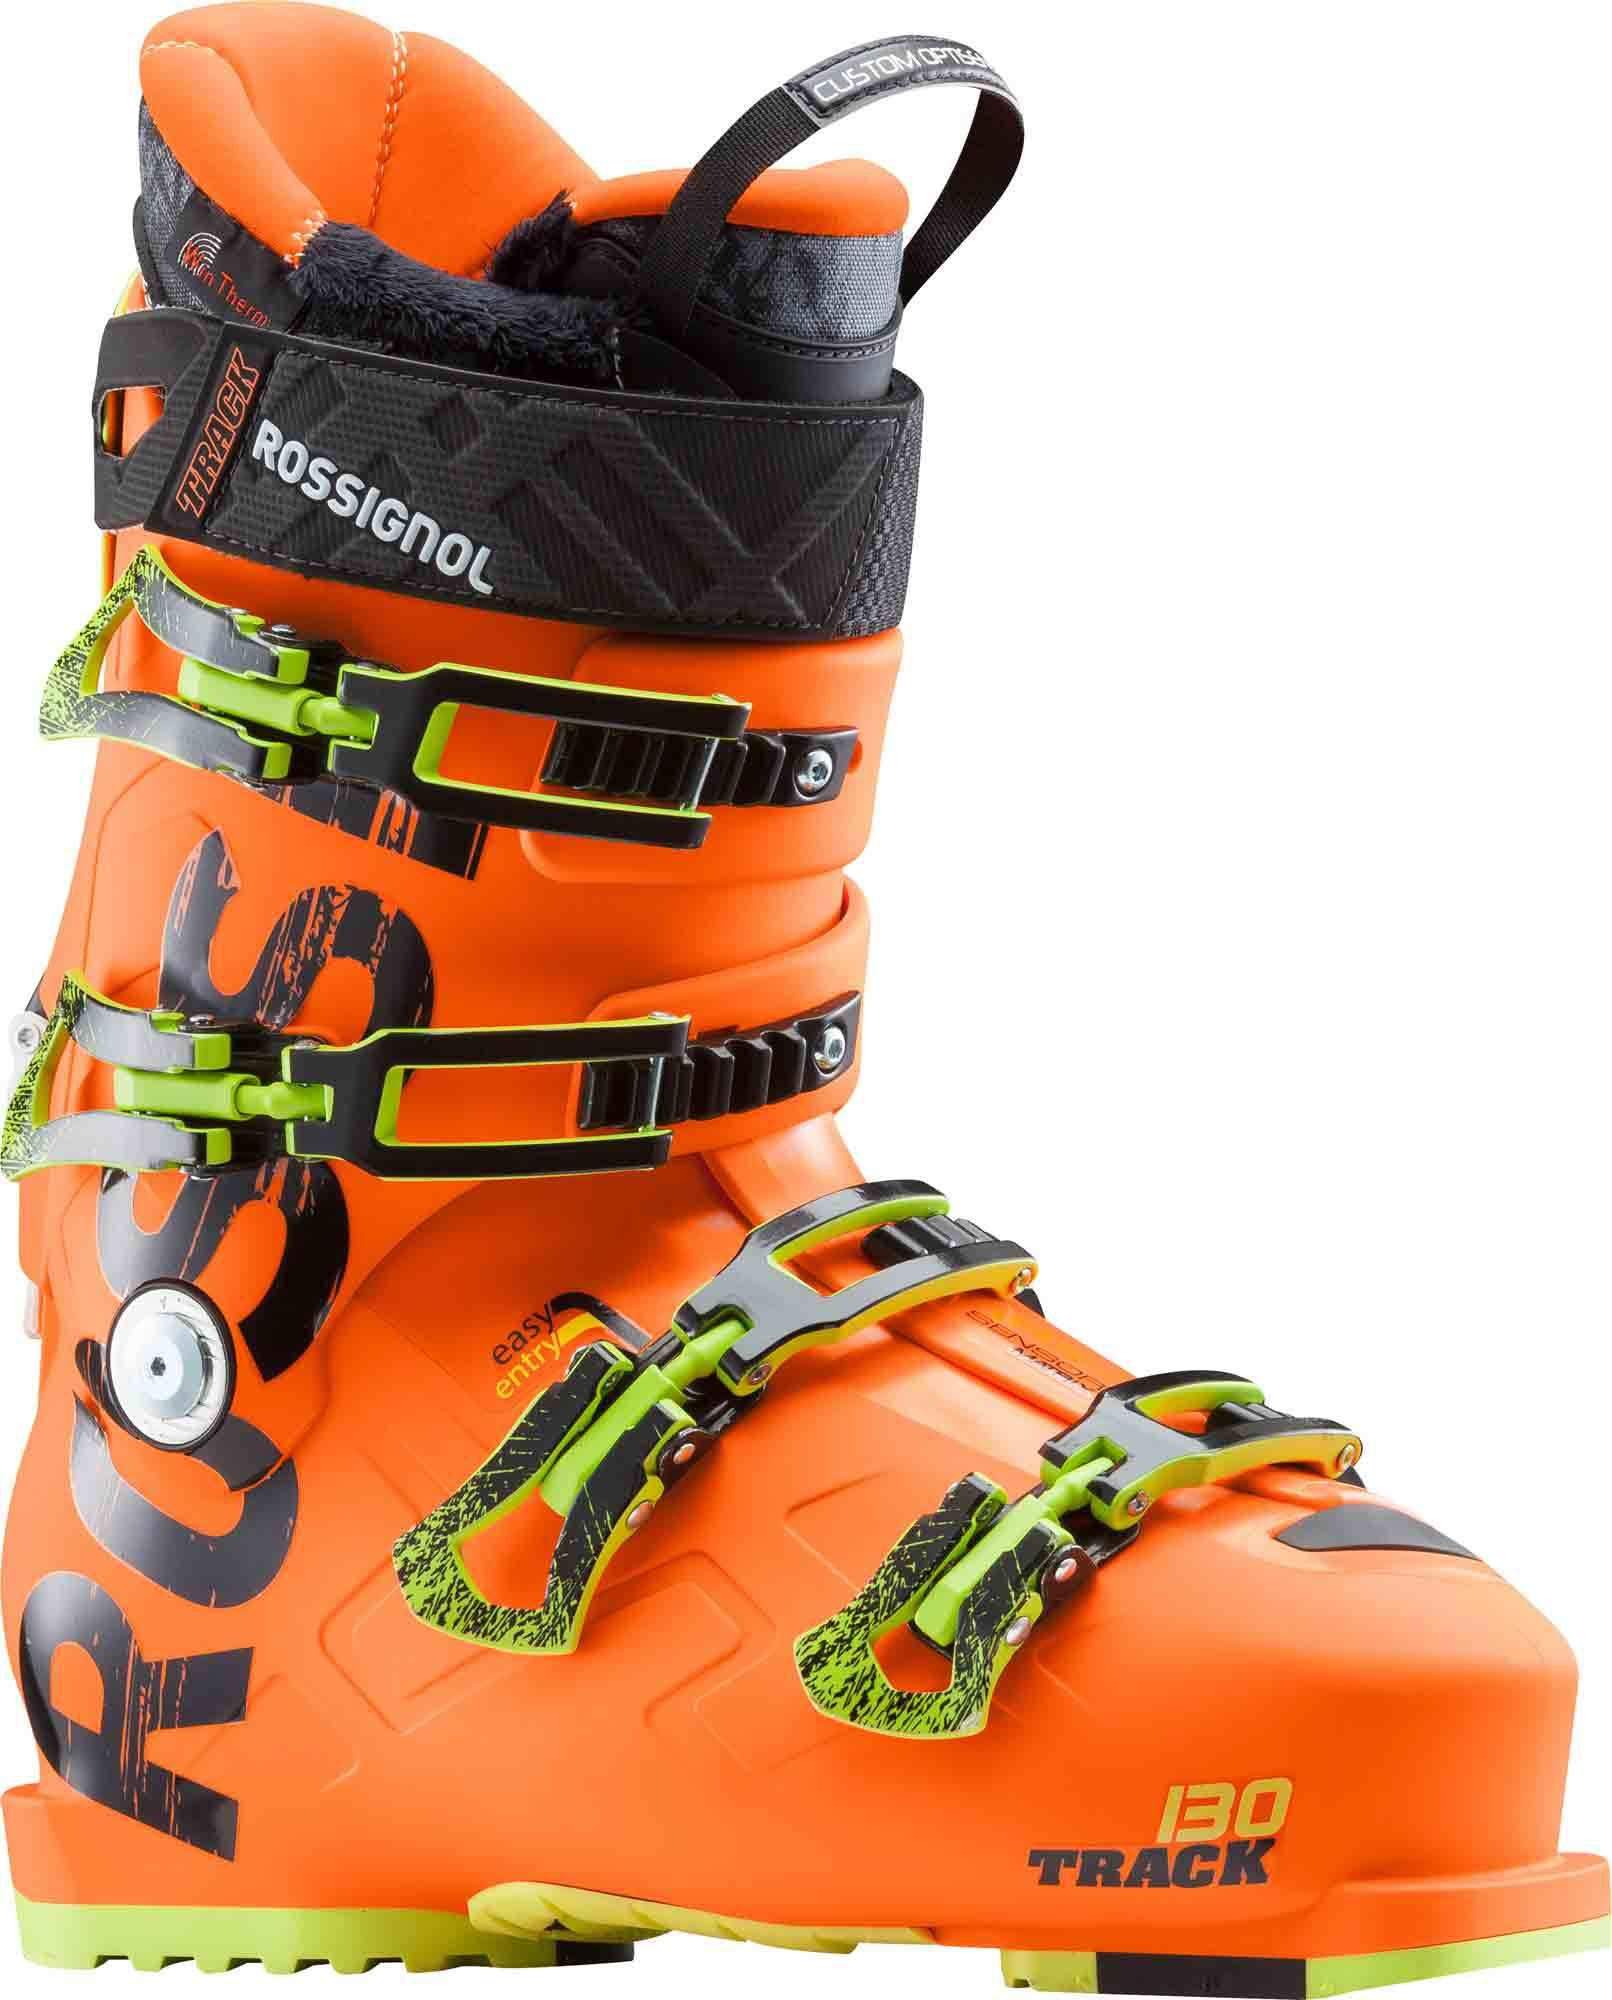 ROSSIGNOL TRACK 130 orange - 2019